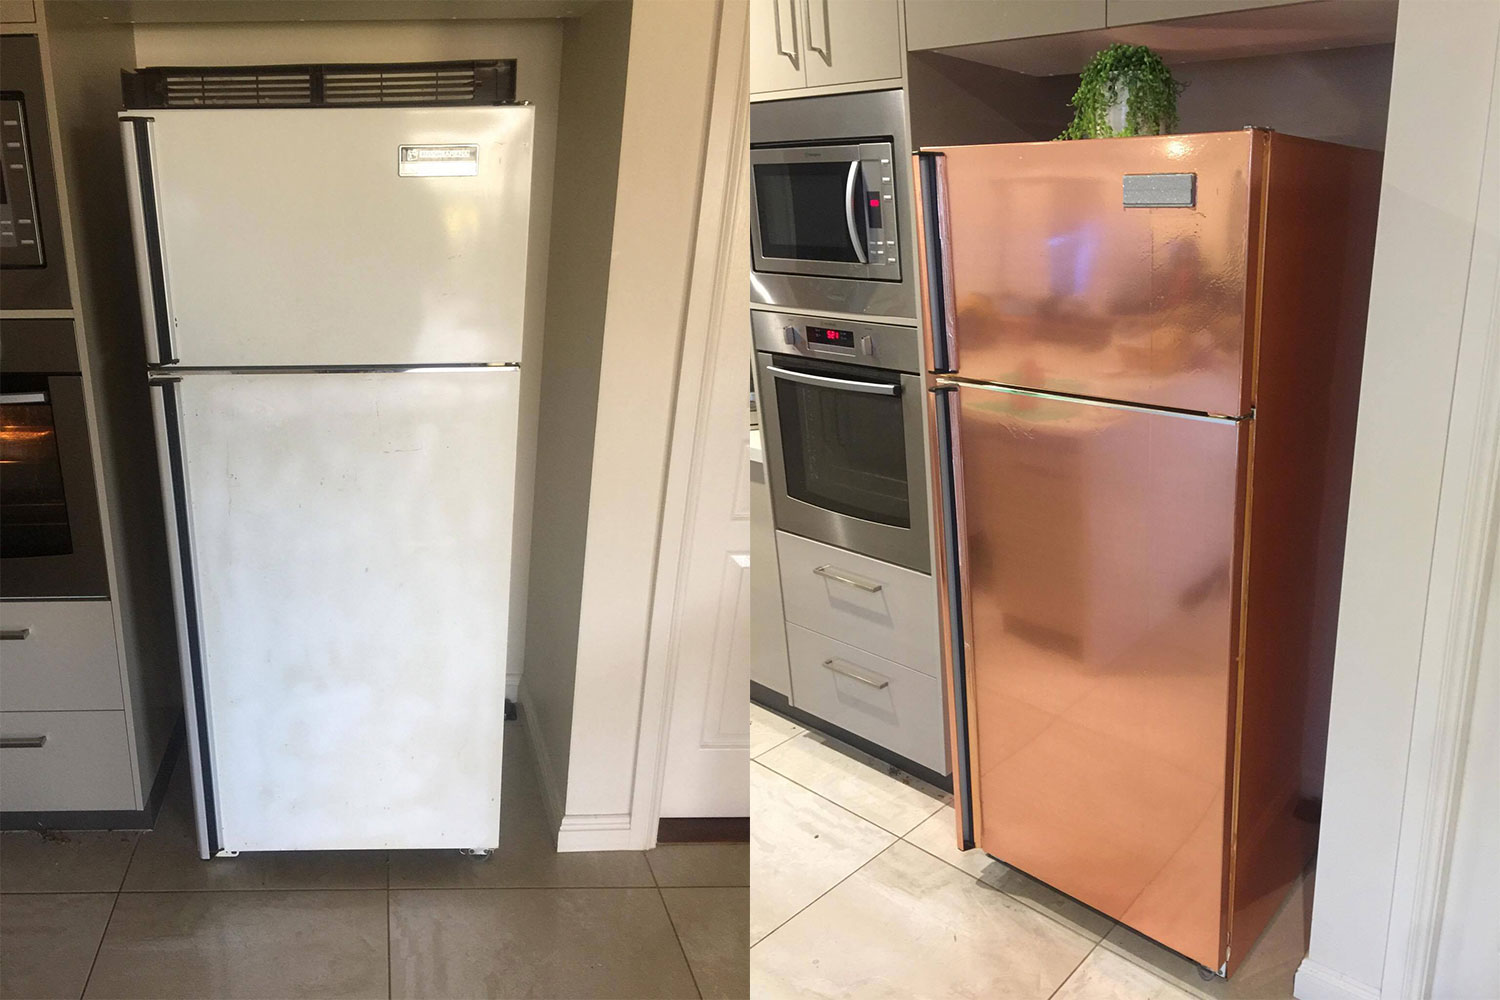 The 5 Kmart Hack That Transformed This Fridge Better